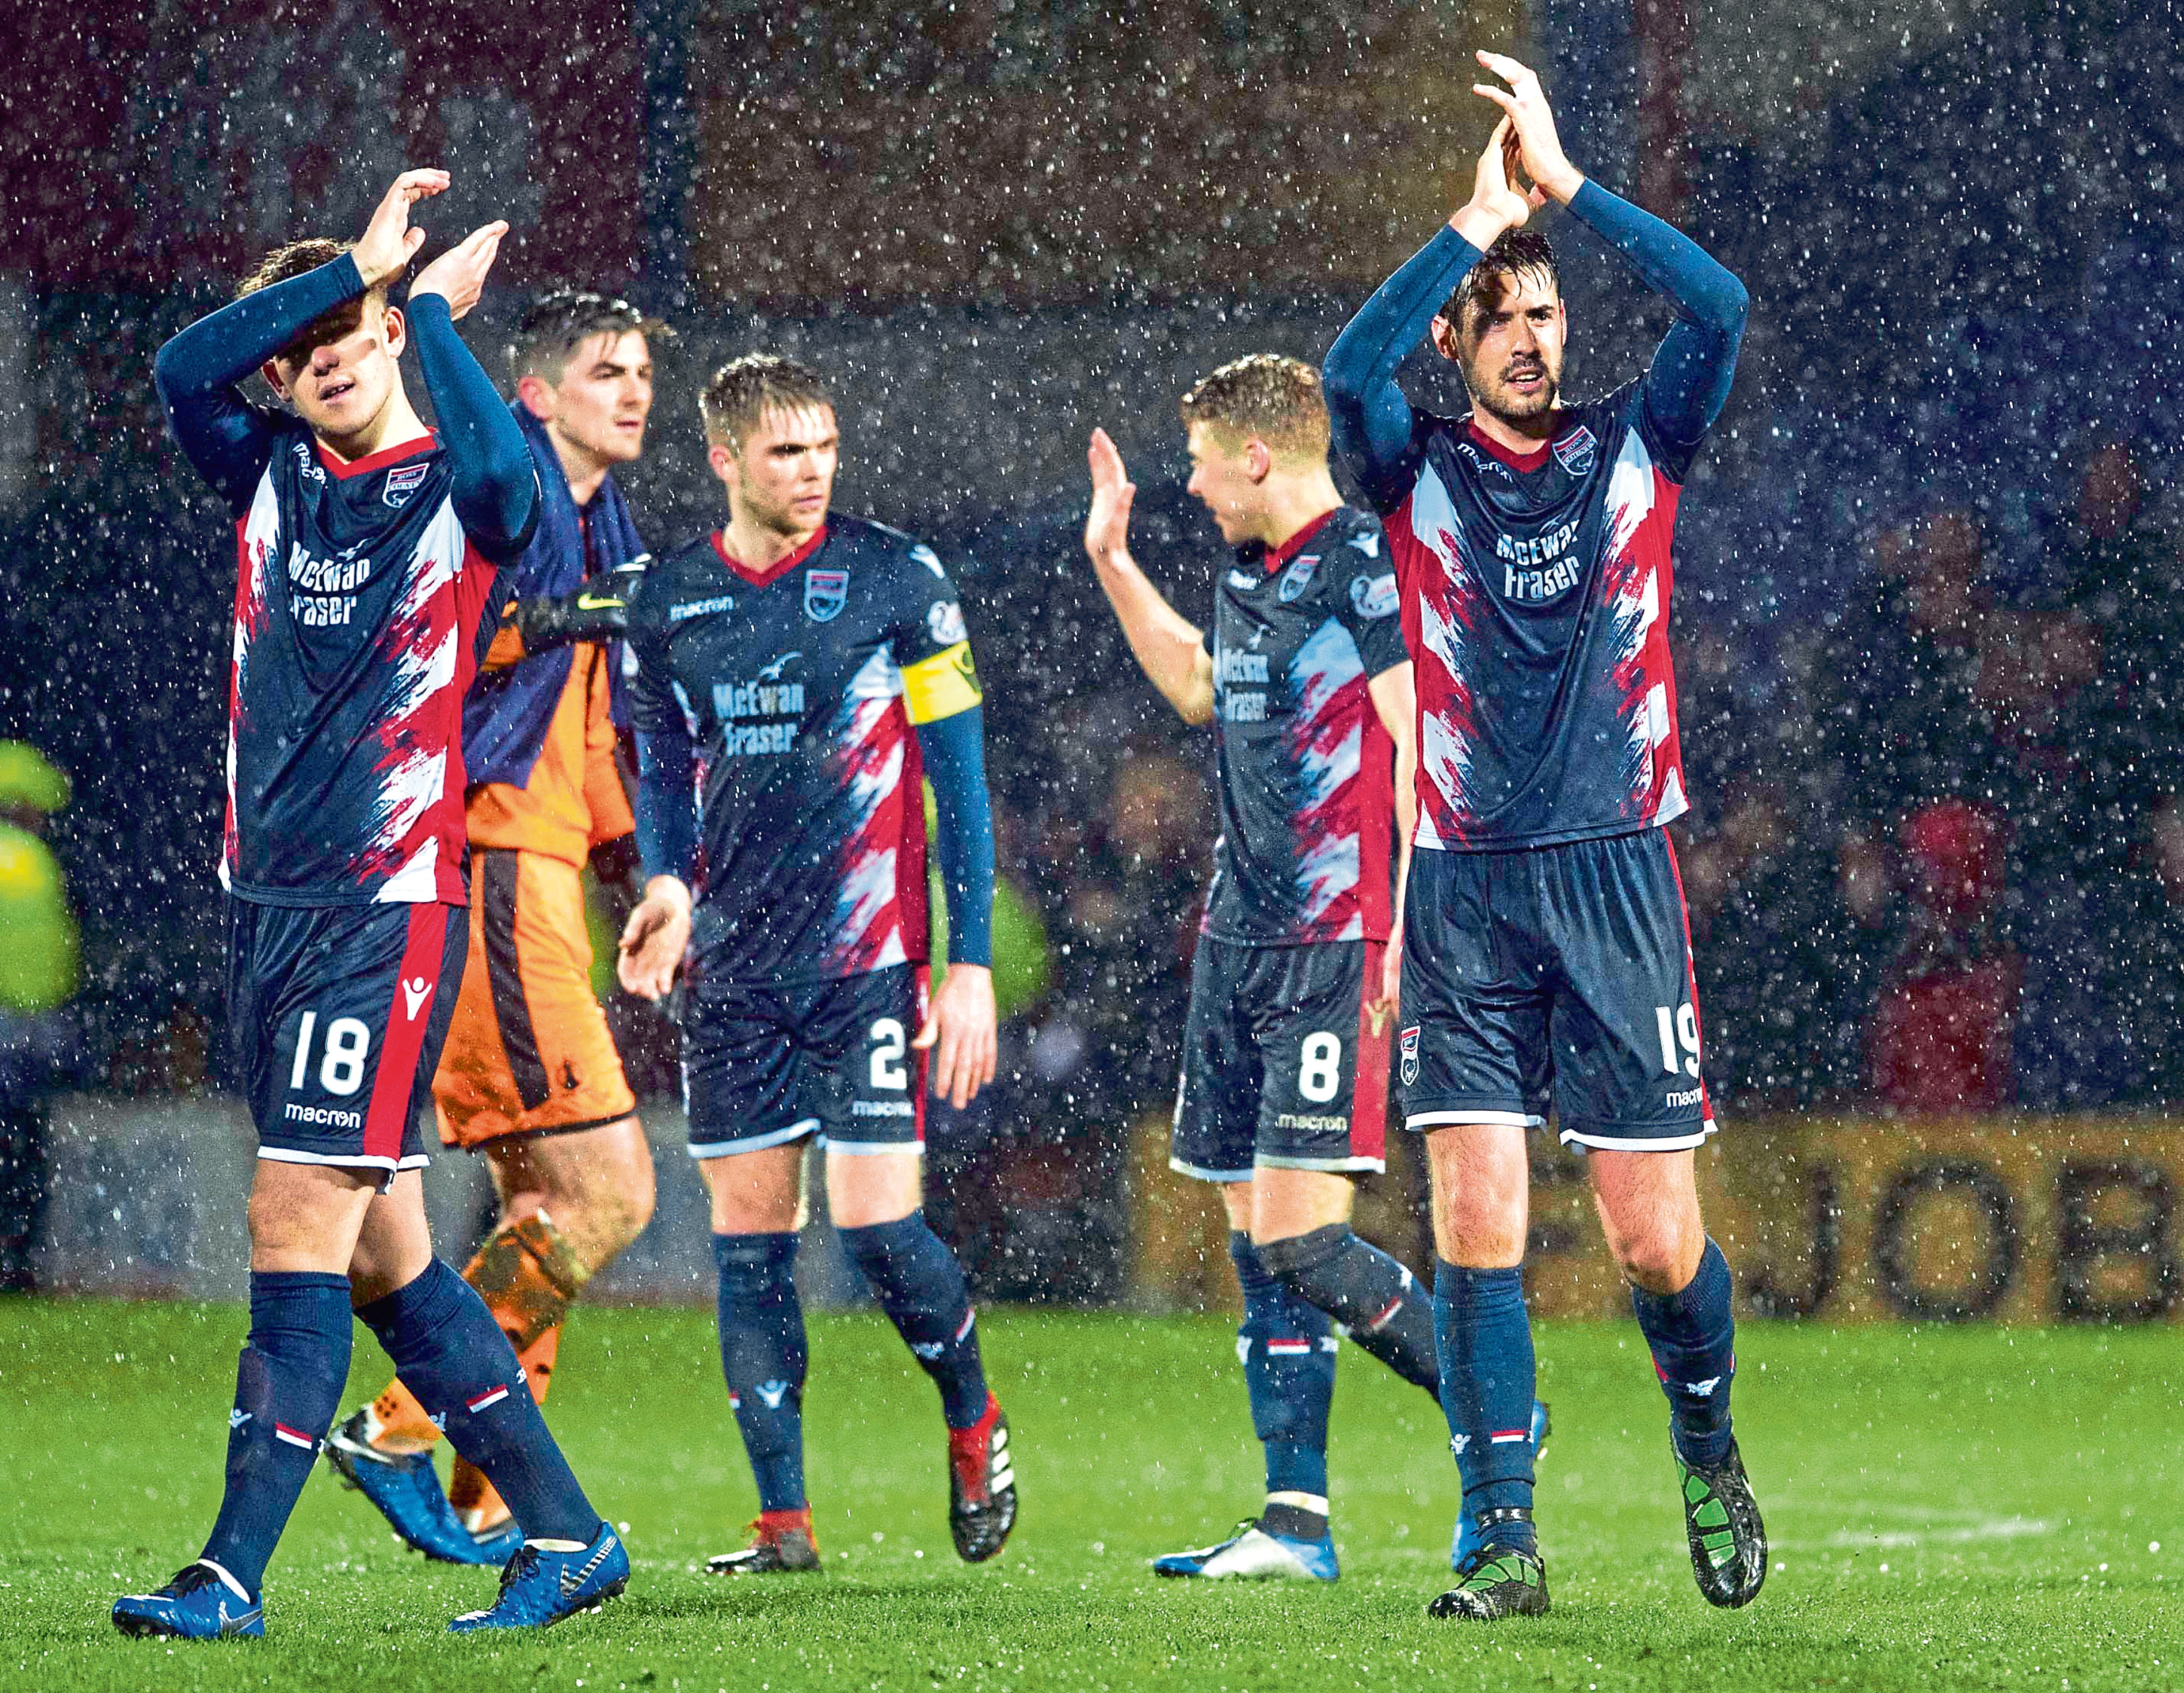 Ross County are 11 points clear at the top of the Championship.